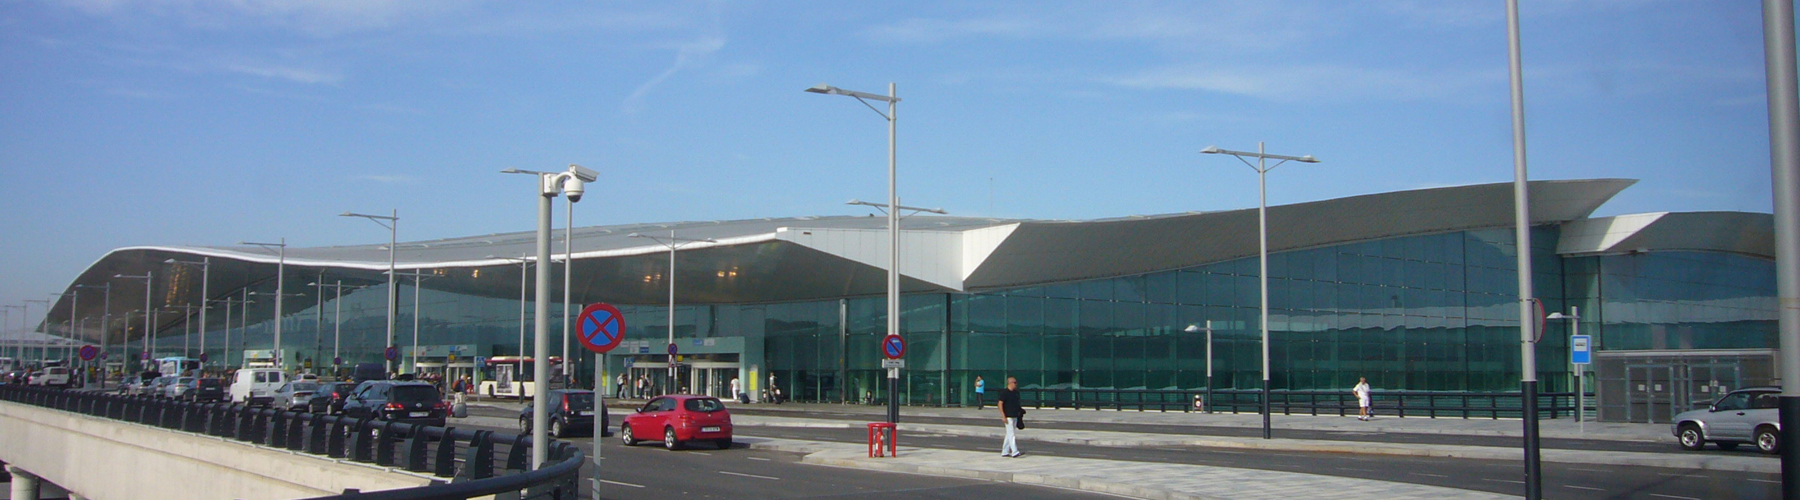 Barcelona – Hostels close to Barcelona El Prat Airport. Maps for Barcelona, Photos and Reviews for each hostel in Barcelona.